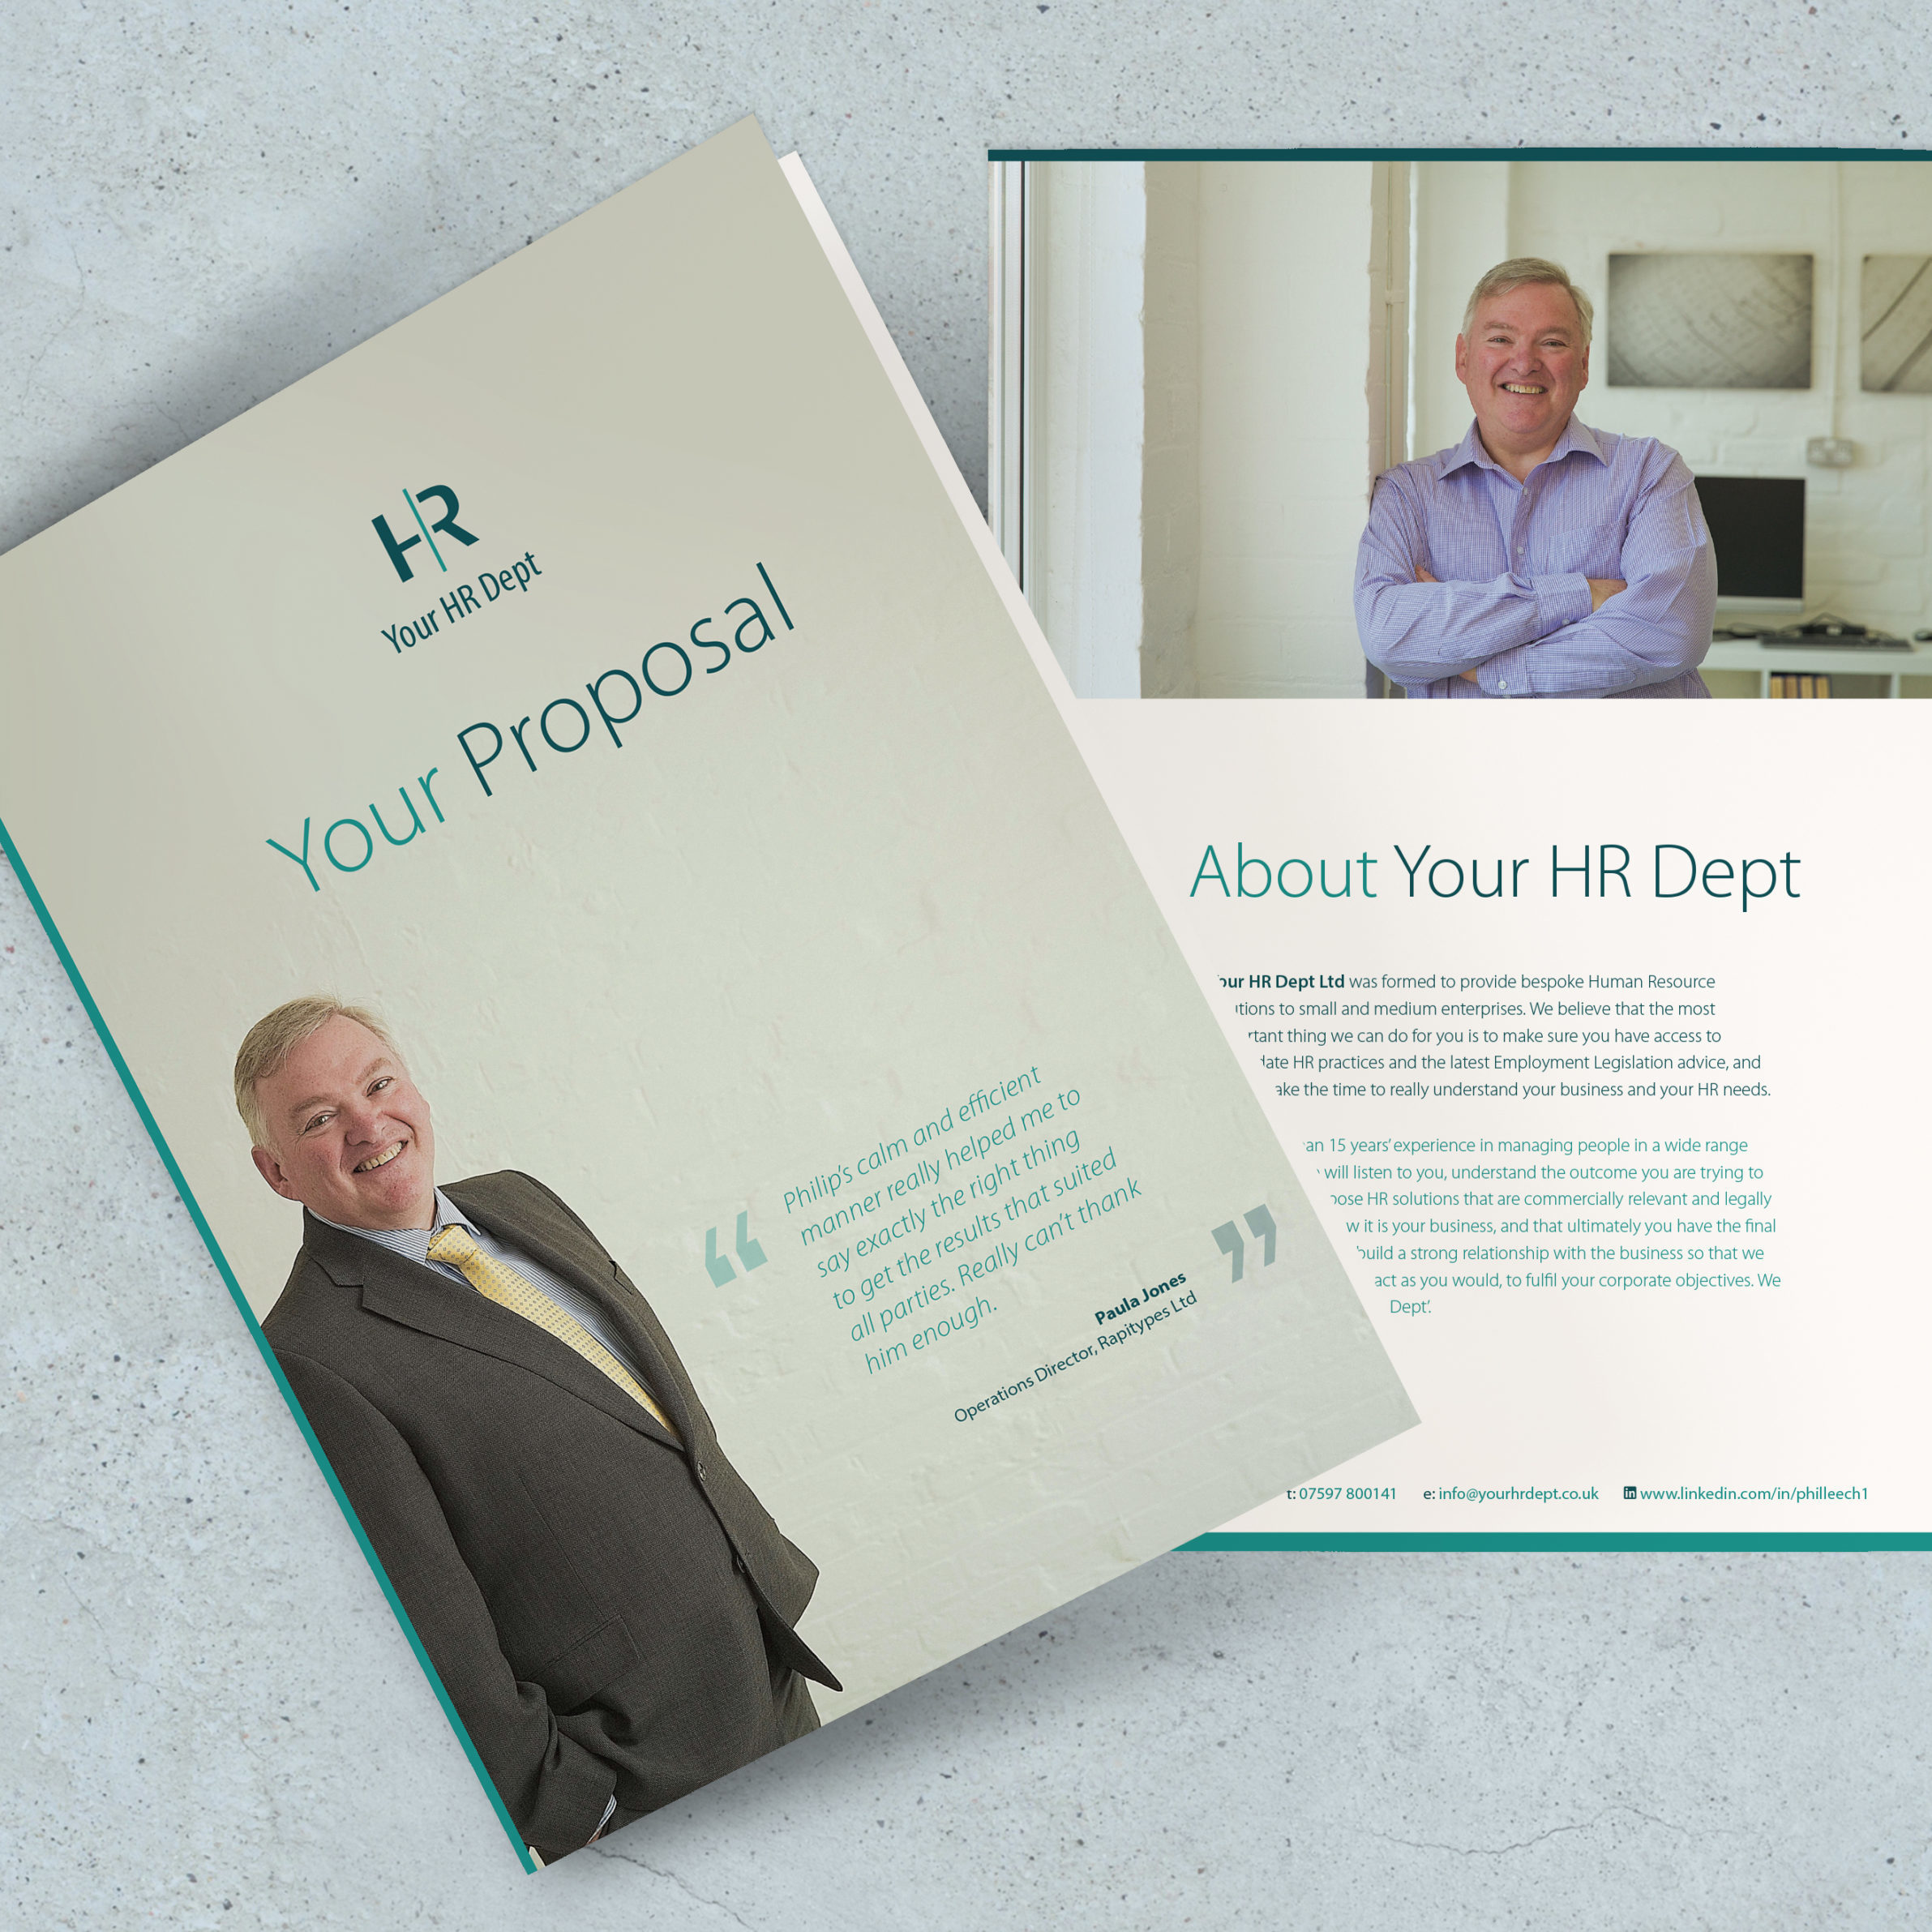 Proposal covers design for Your HR Dept